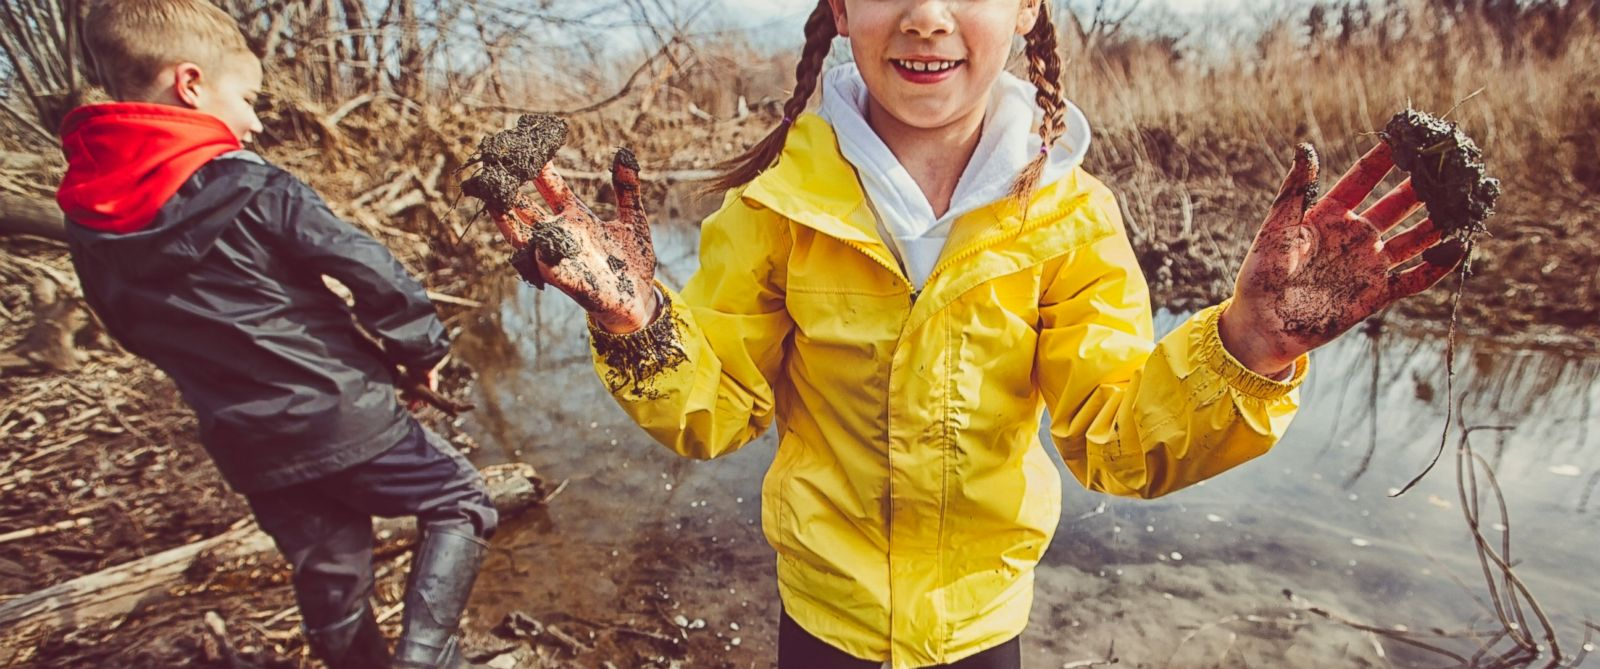 "PHOTO: In the book ""Let Them Eat Dirt: Saving Your Child from an Oversanitized World,"" researchers B. Brett Finlay and Marie-Claire Arrieta argue that allowing children to get dirty exposes them to healthy germs and can actually be good for them."